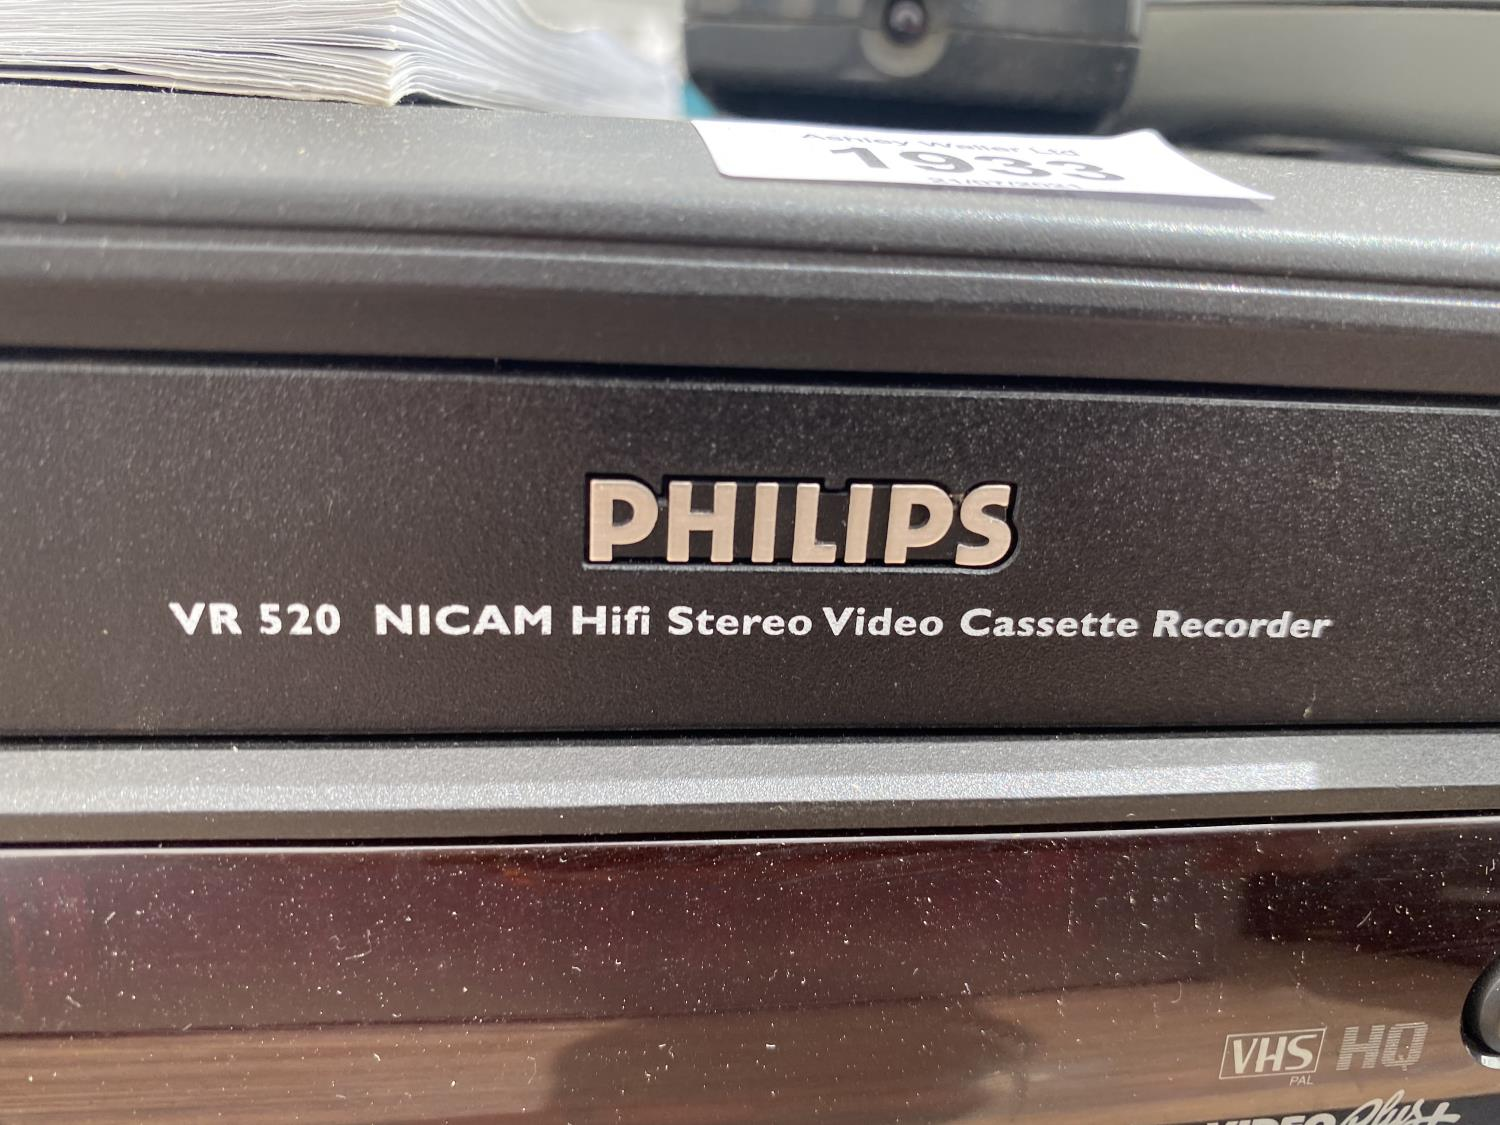 A SAMSUNG DVD PLAYER AND A PHILIPS VHS PLAYER - Image 2 of 3